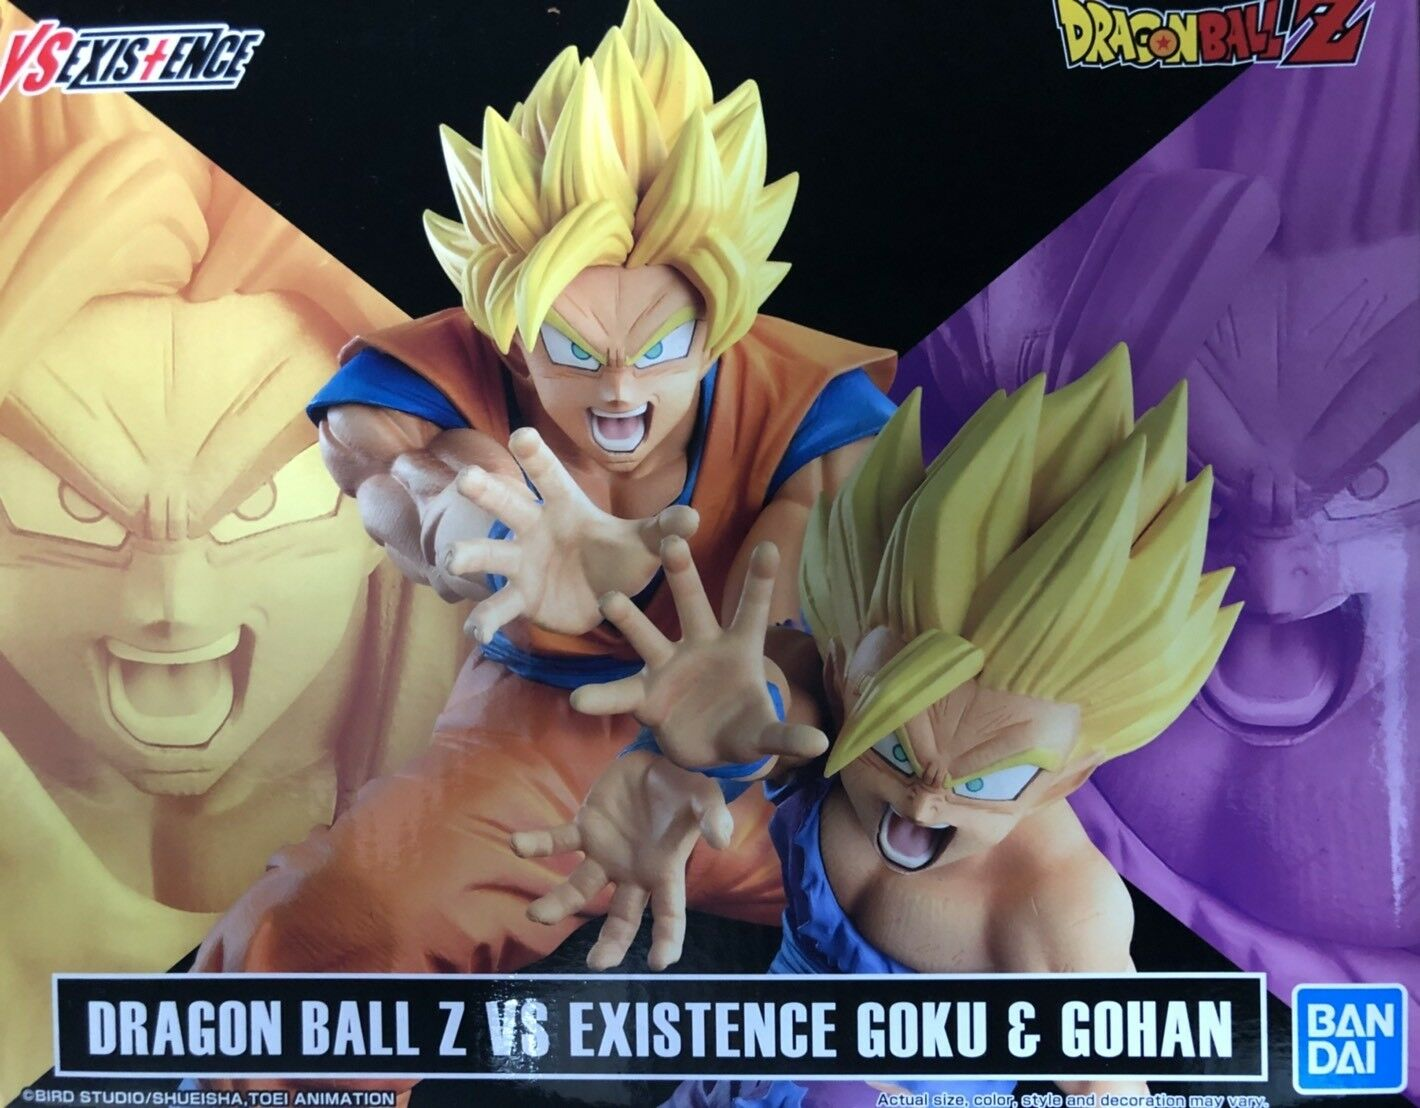 BANDAI BANPRESTO DRAGON BALL Z VS EXISTENCE GOKU & GOHAN FIGURE OVERSEA LIMITED